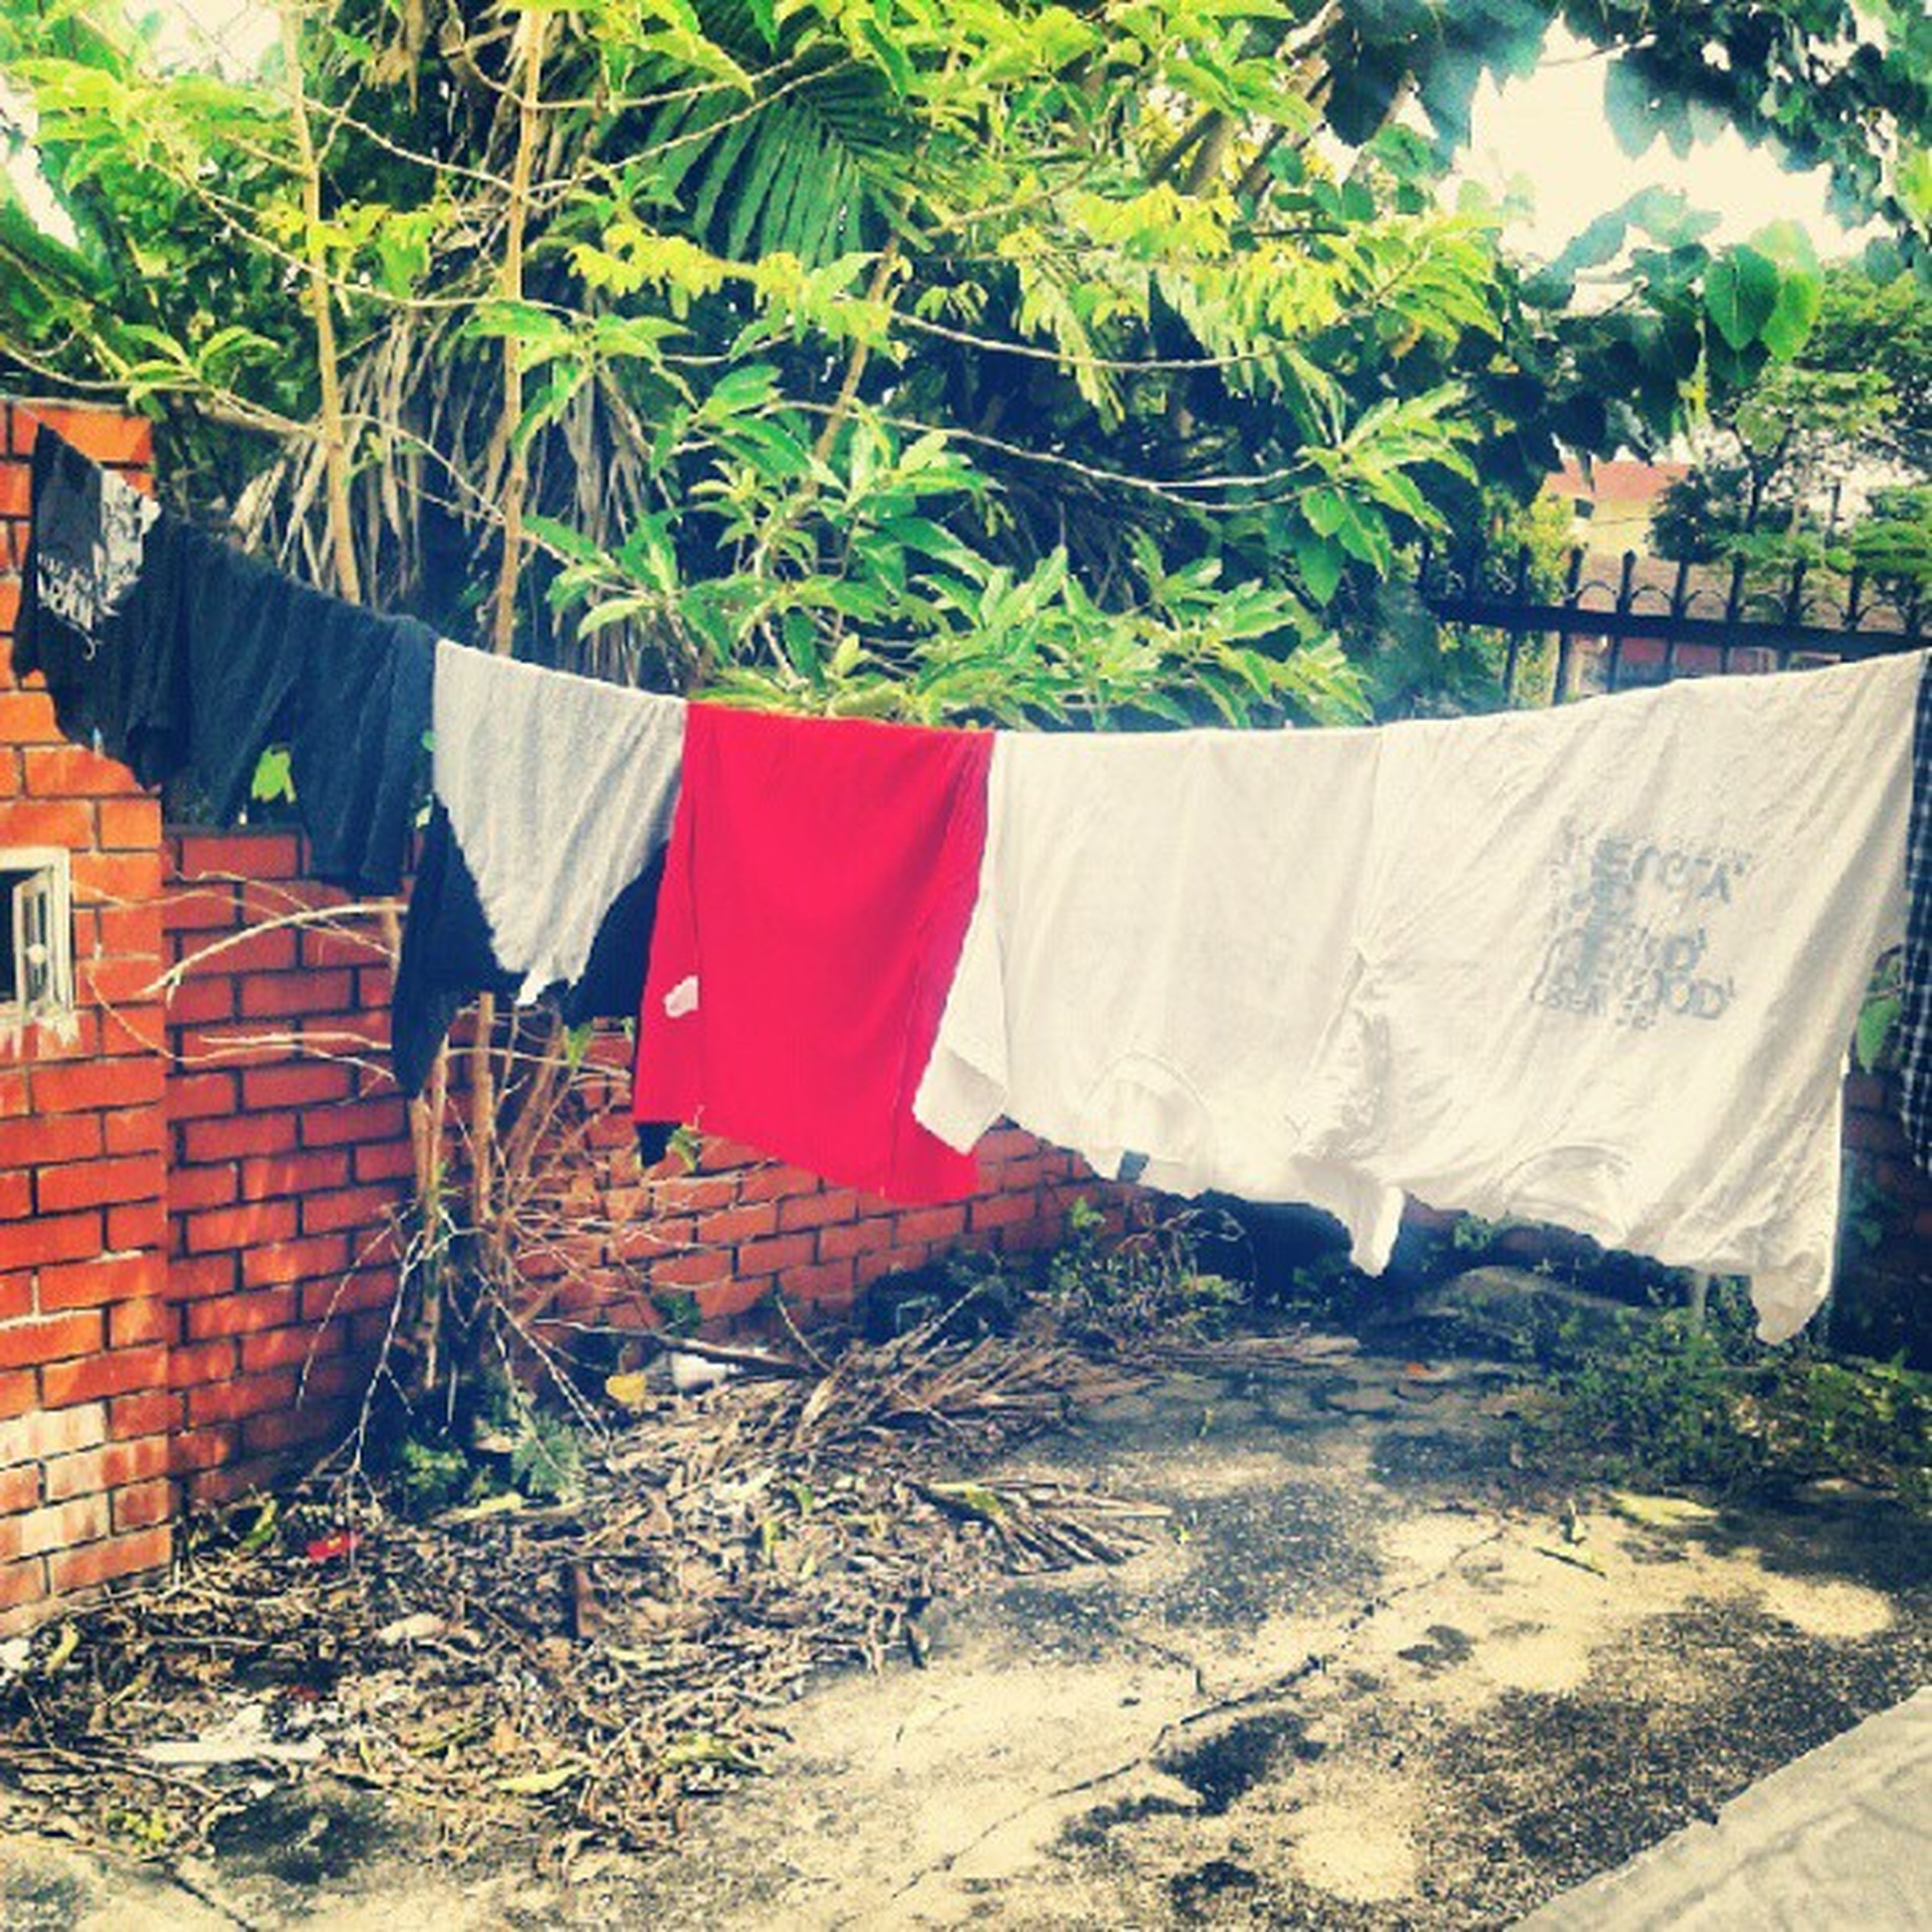 built structure, architecture, red, building exterior, tree, plant, day, house, outdoors, growth, no people, nature, wall - building feature, sand, wall, abandoned, sunlight, beach, drying, flag